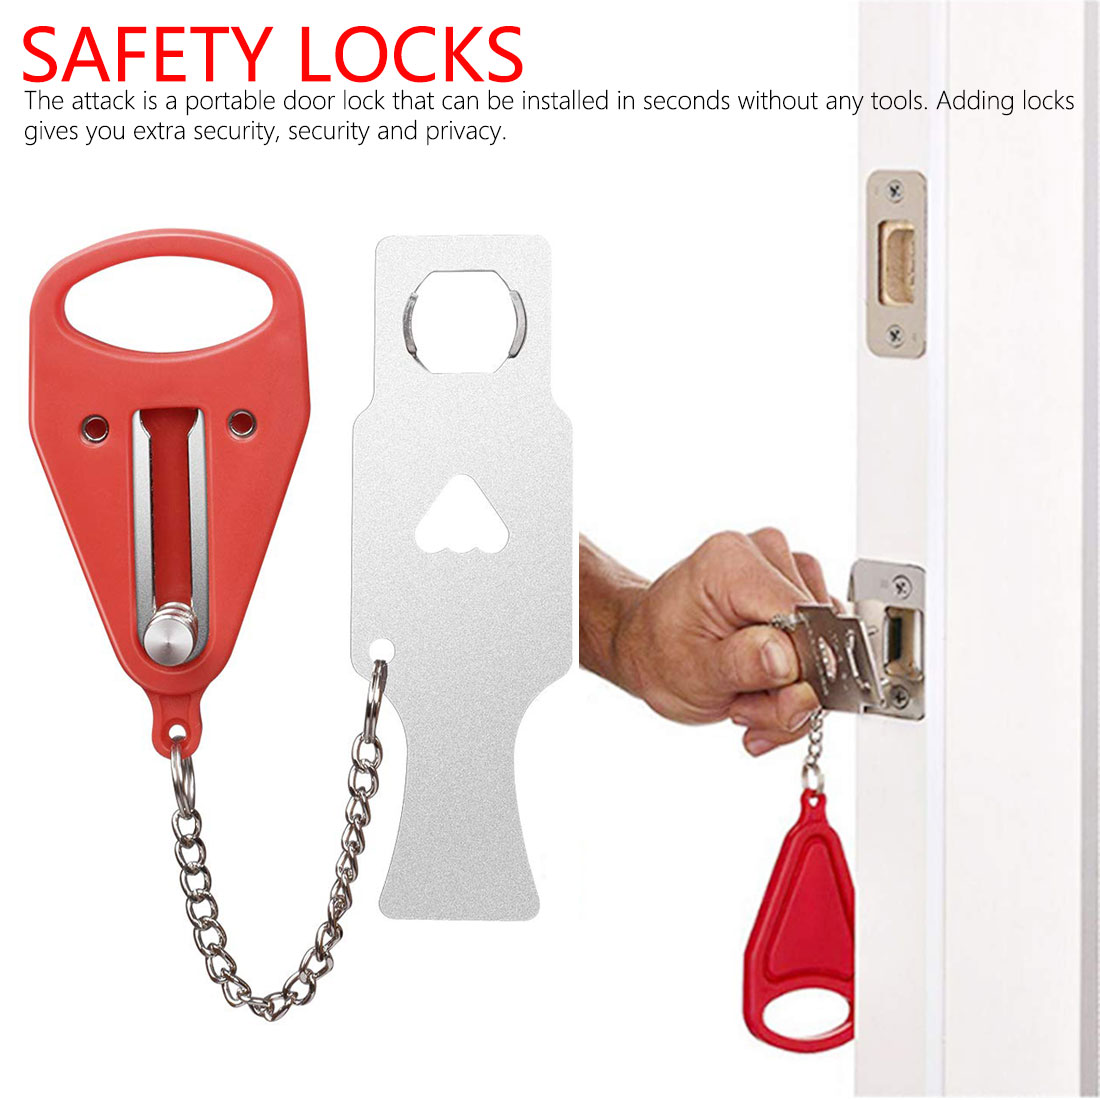 Creative Door Locks For House Doors Portable Selfdefence Anti-theft Compatible Addalock For Traveling Security Door Bolt